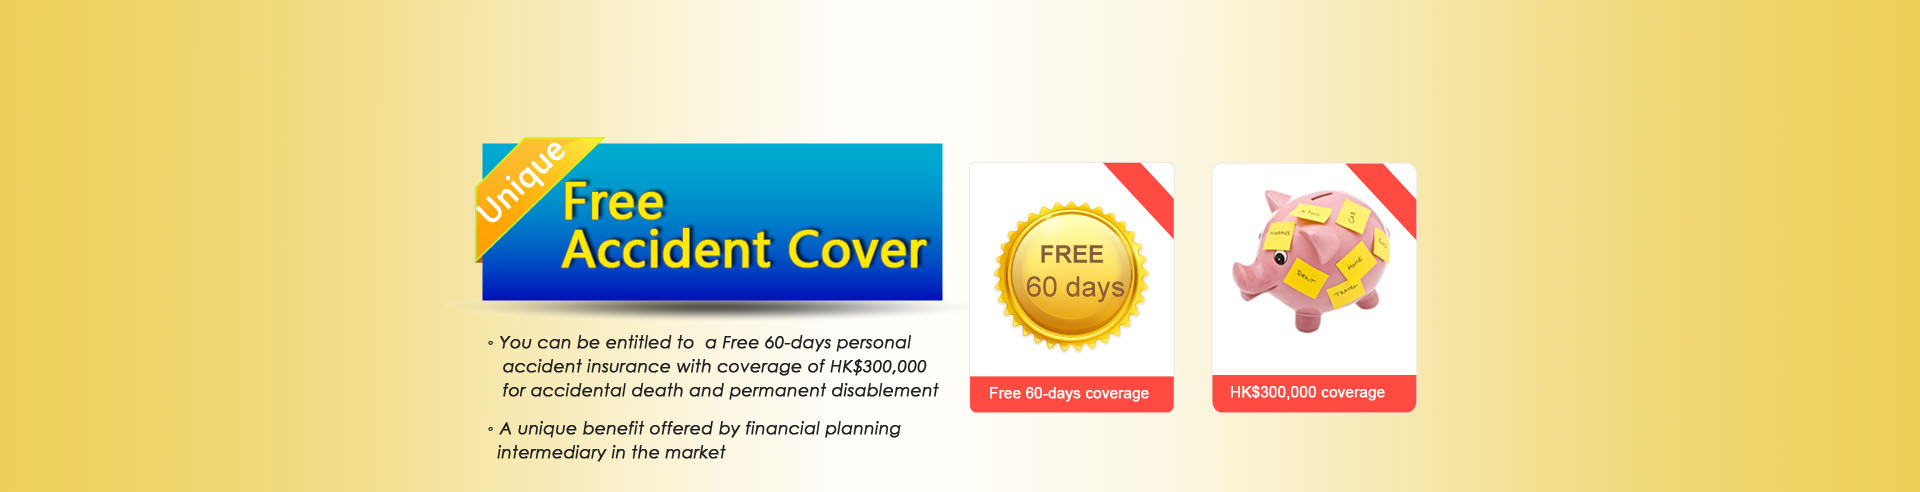 Free accident cover